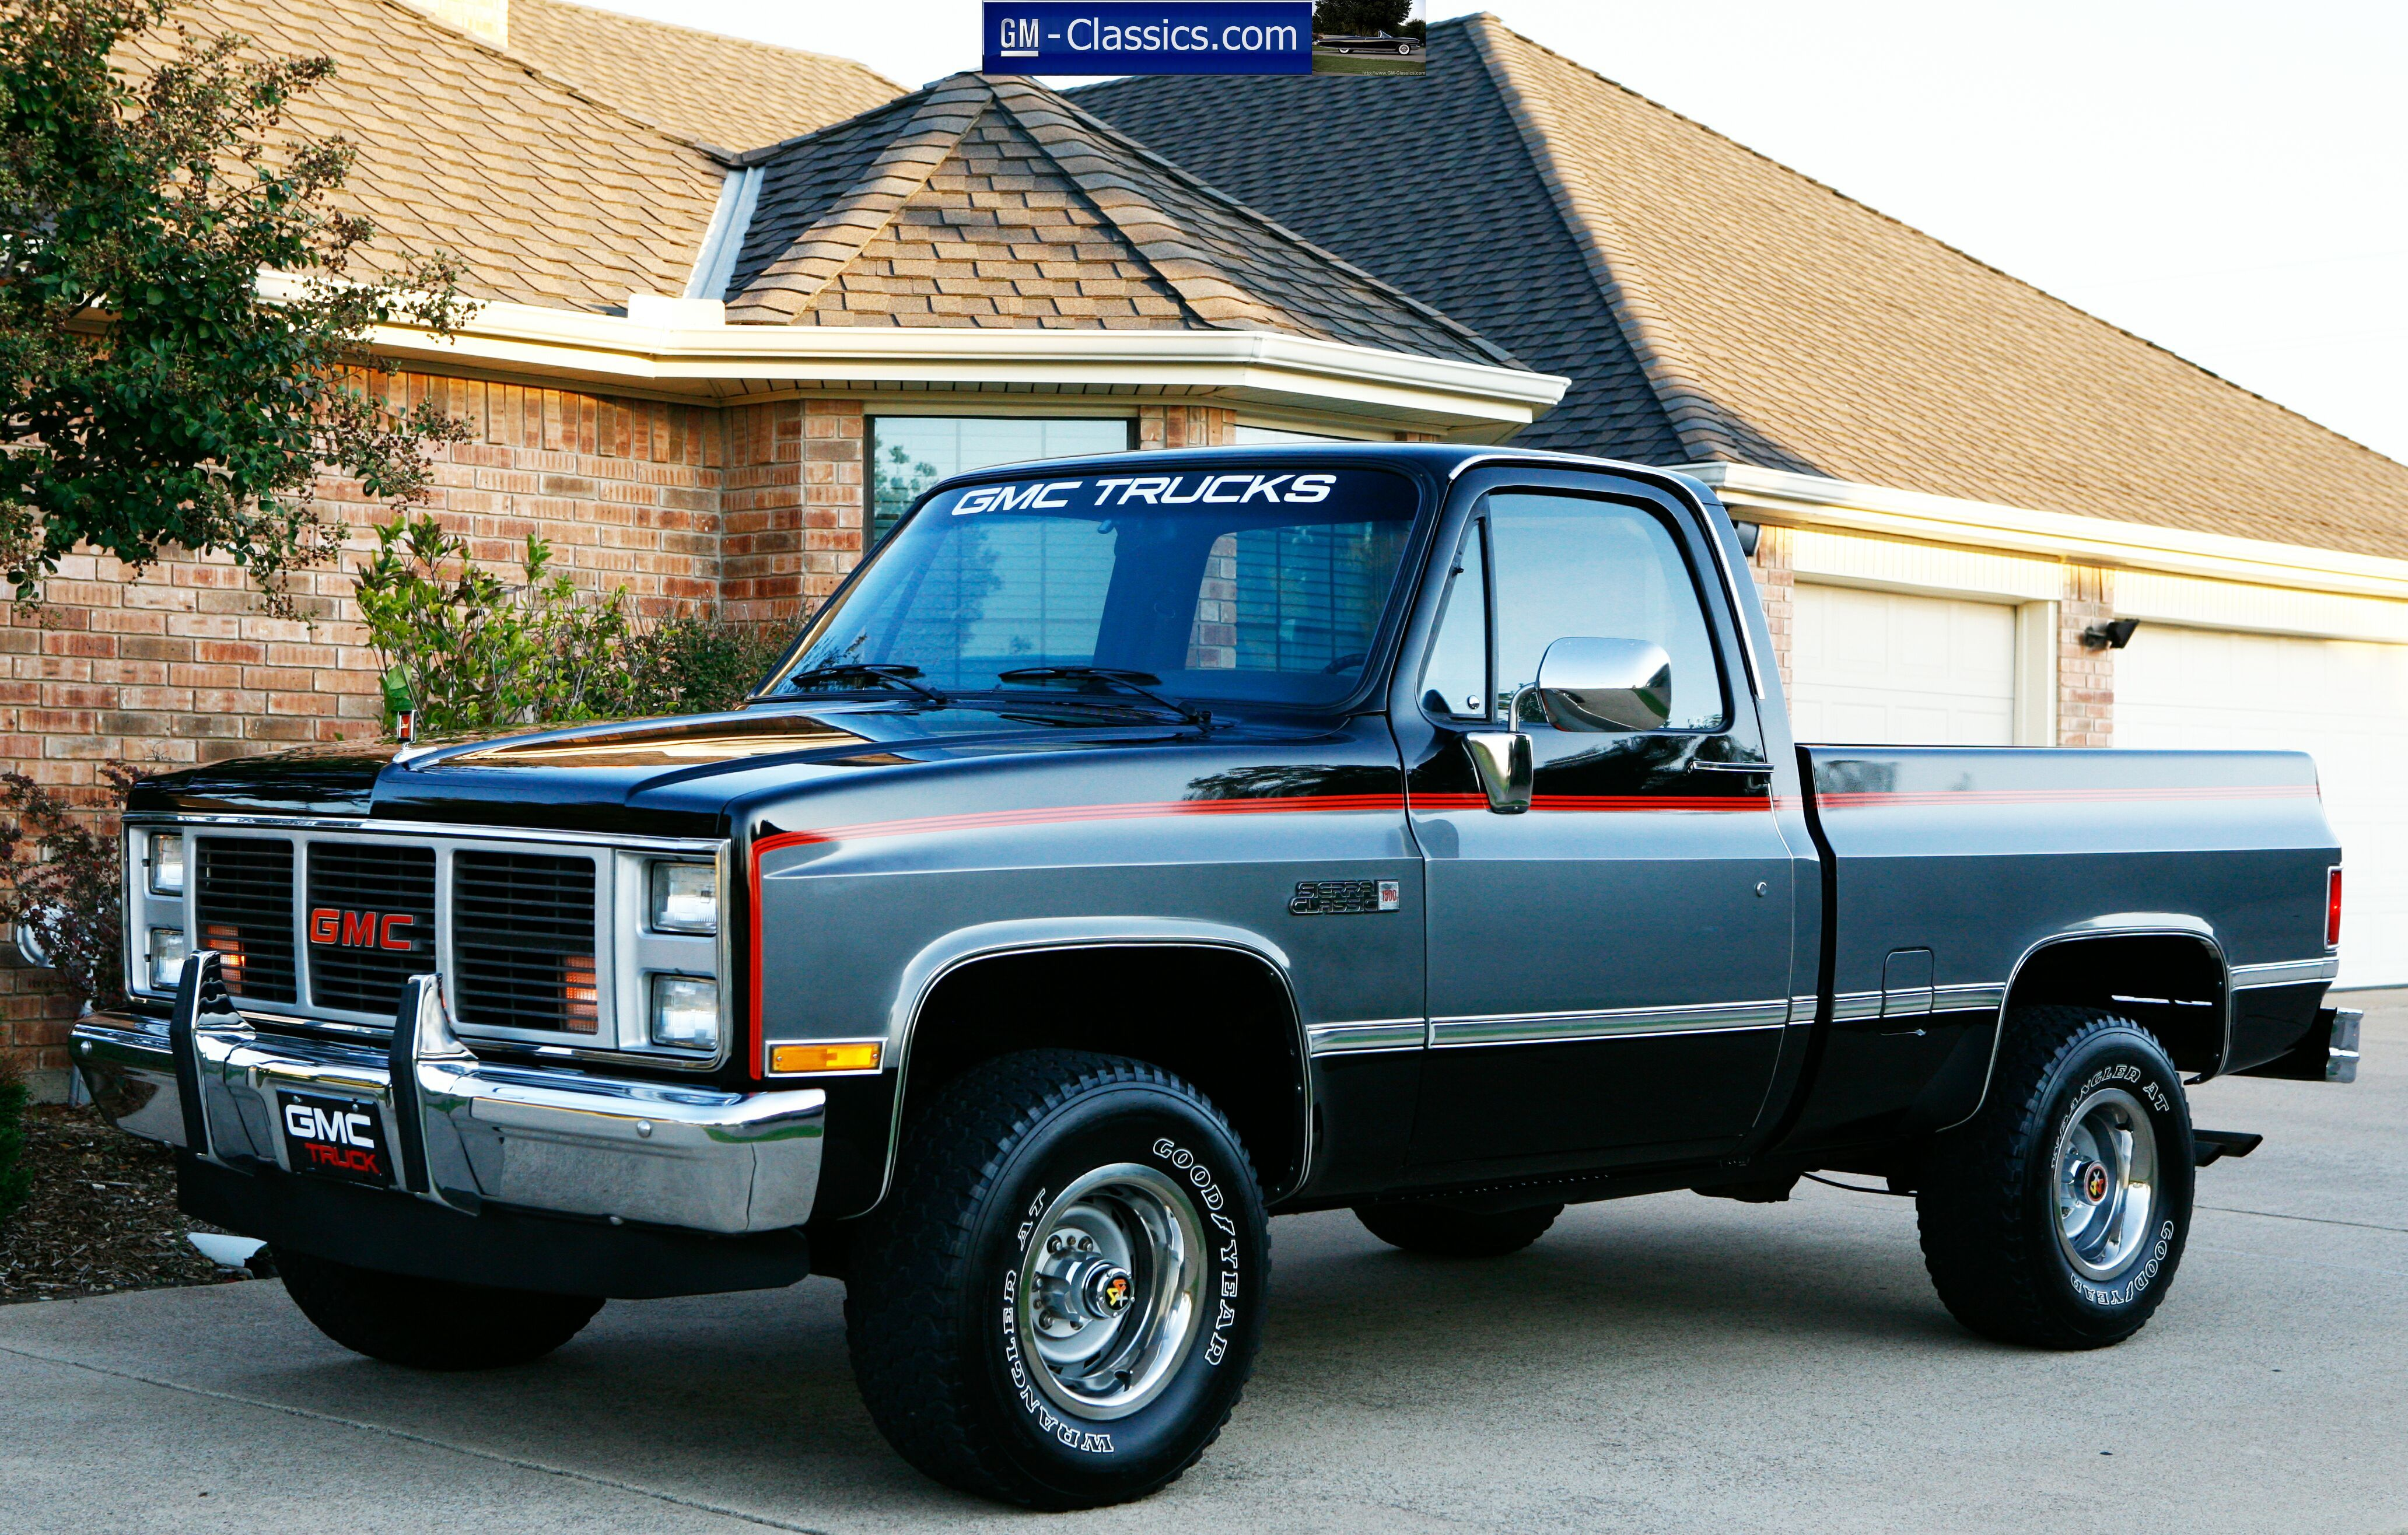 1987 Gmc Half Ton Short Bed 4x4 Pickup This Is What I